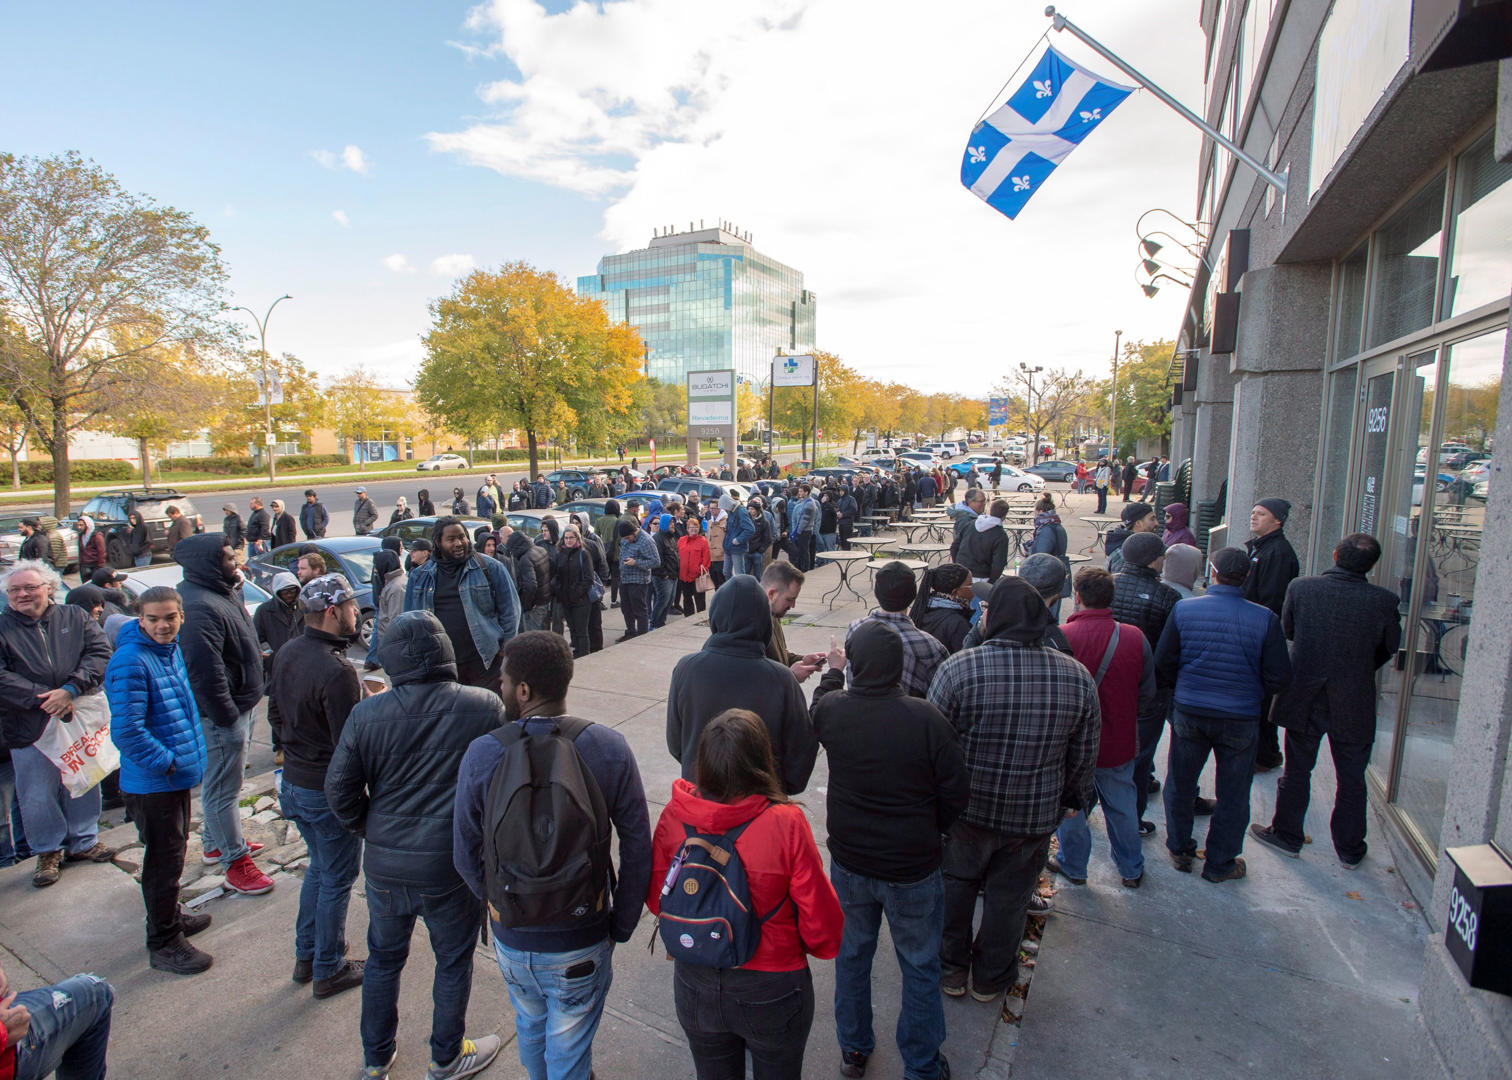 Slide 19 of 31: Hundreds of people line up at a government cannabis store Wednesday, October 17, 2018 in Montreal as the legal sale of cannabis begins in Canada.